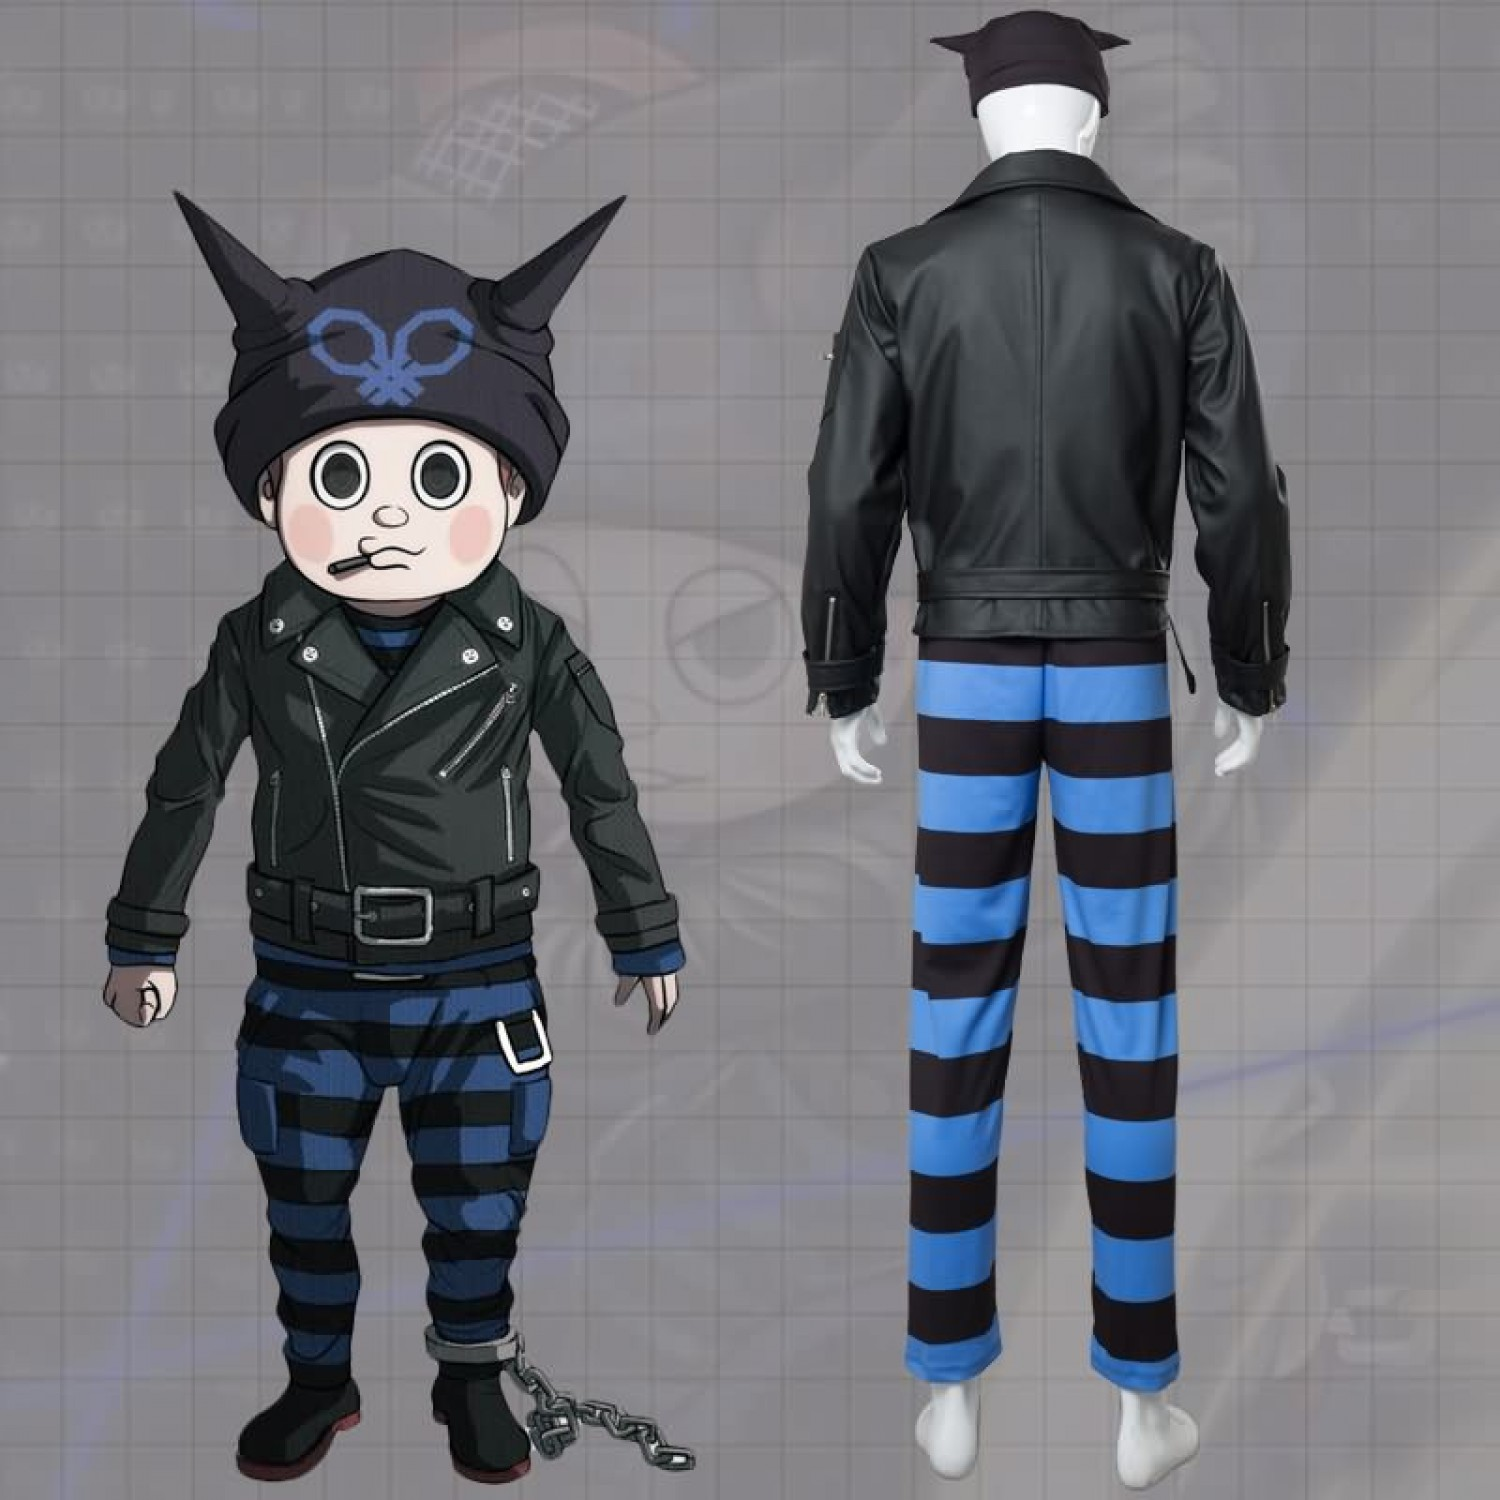 Danganronpa V3 Killing Harmony Ryoma Hoshi Cosplay Costume Free Shipping 99 99 This also extends to the monokubs, who are voiced by sean chiplock (monotaro, previously voiced kiyotaka tenko's tendency to make weird faces is because her voice actress also voiced applejack, who has the same. killing harmony ryoma hoshi cosplay